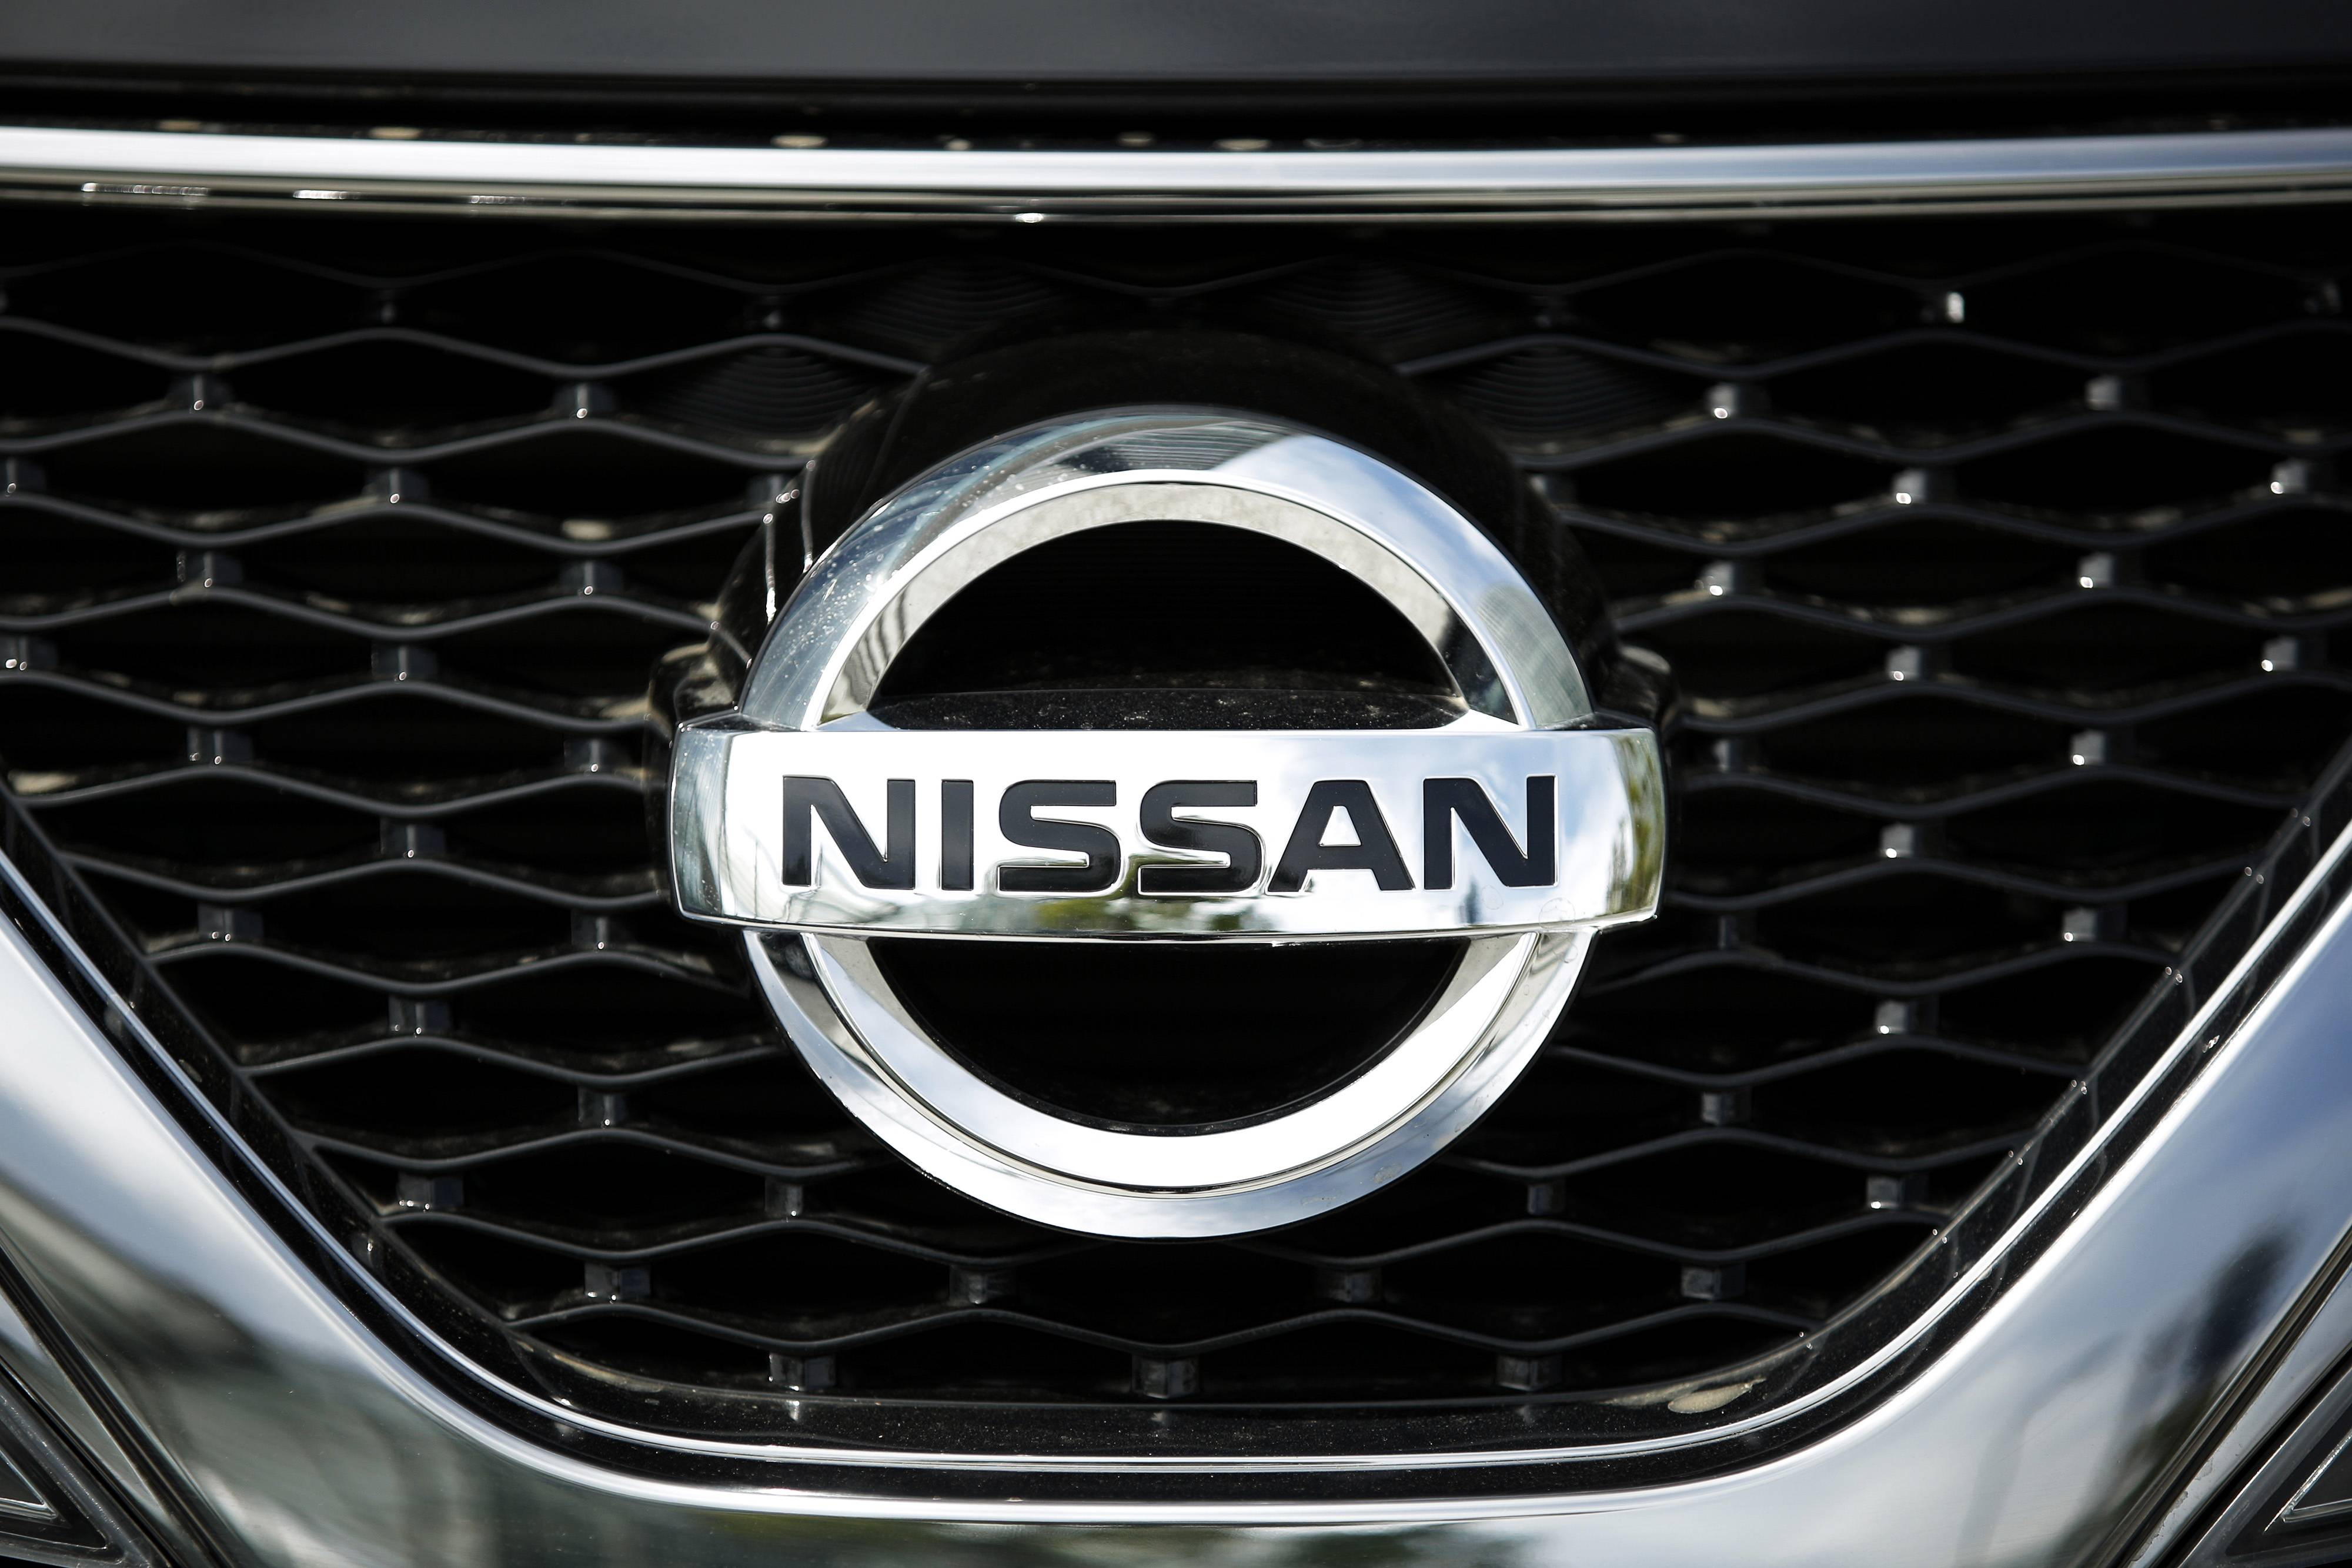 Carlos Ghosn, chairman and chief executive officer of Nissan Motor Co., said that 2014 will be more robust than last year as Nissan targets a market share of more than 10 percent share in the U.S.